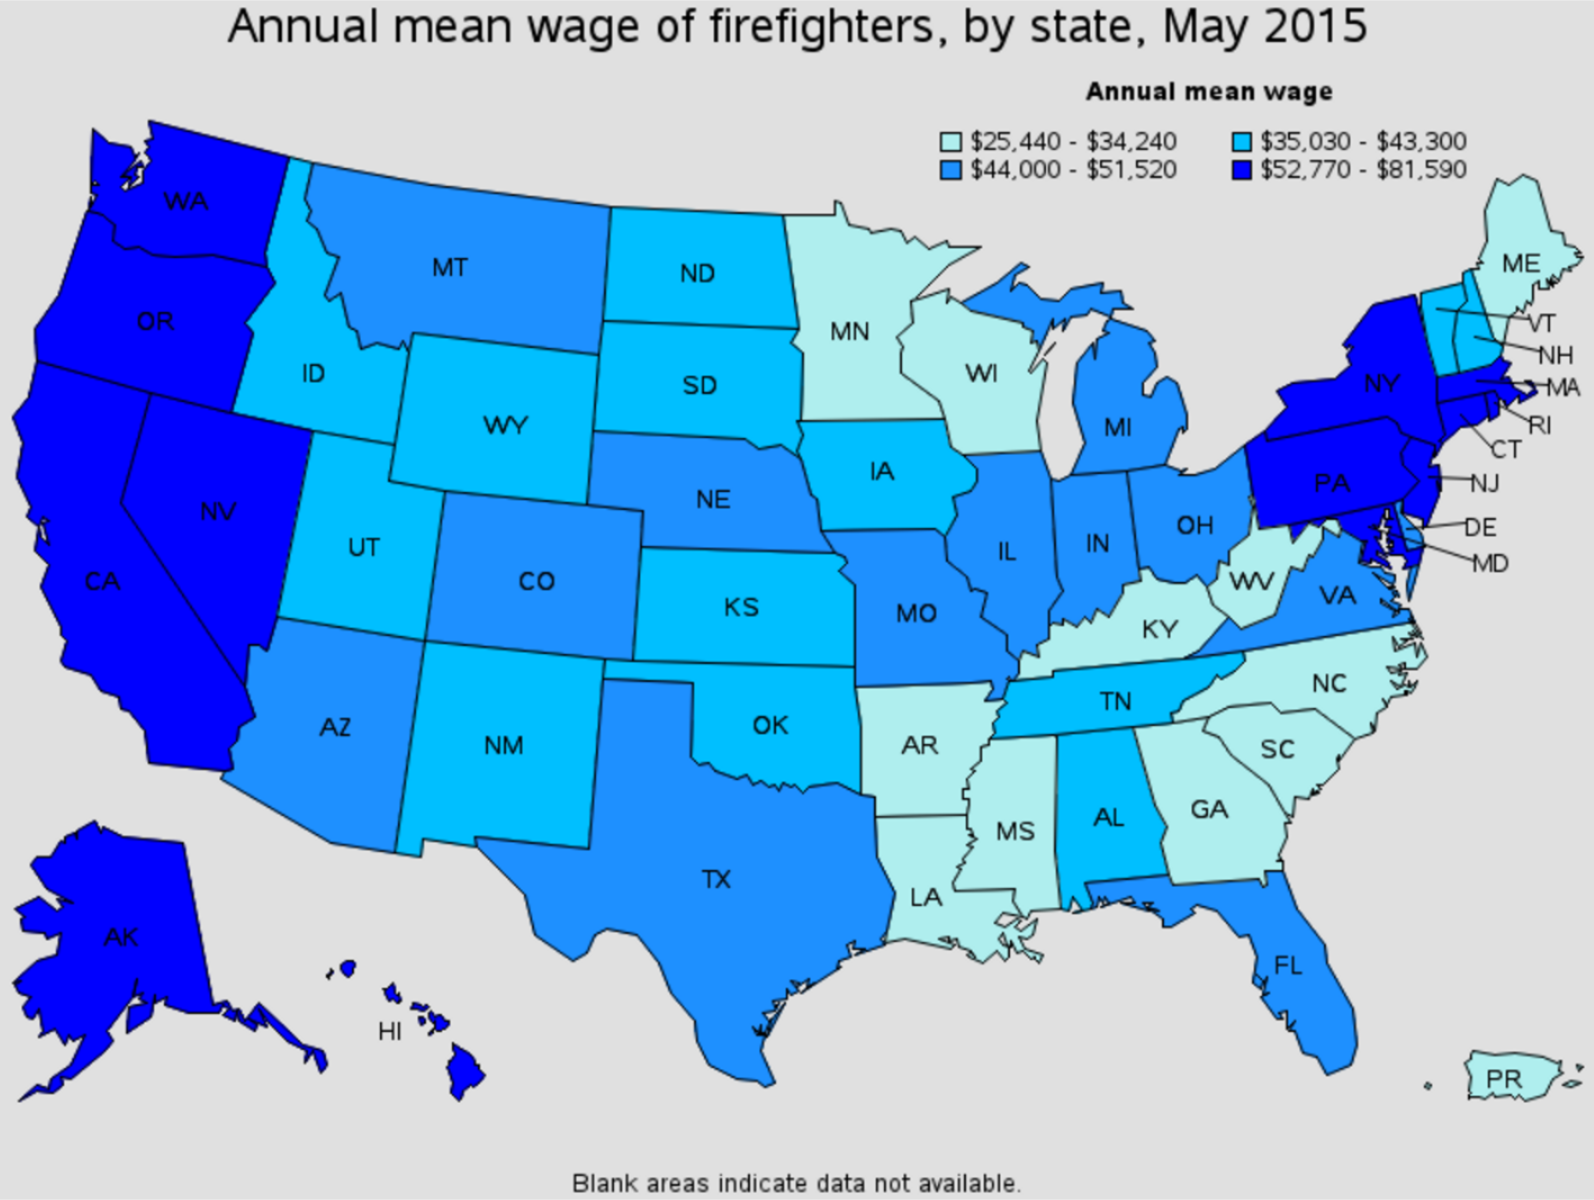 firefighter average salary by state Concordia Missouri